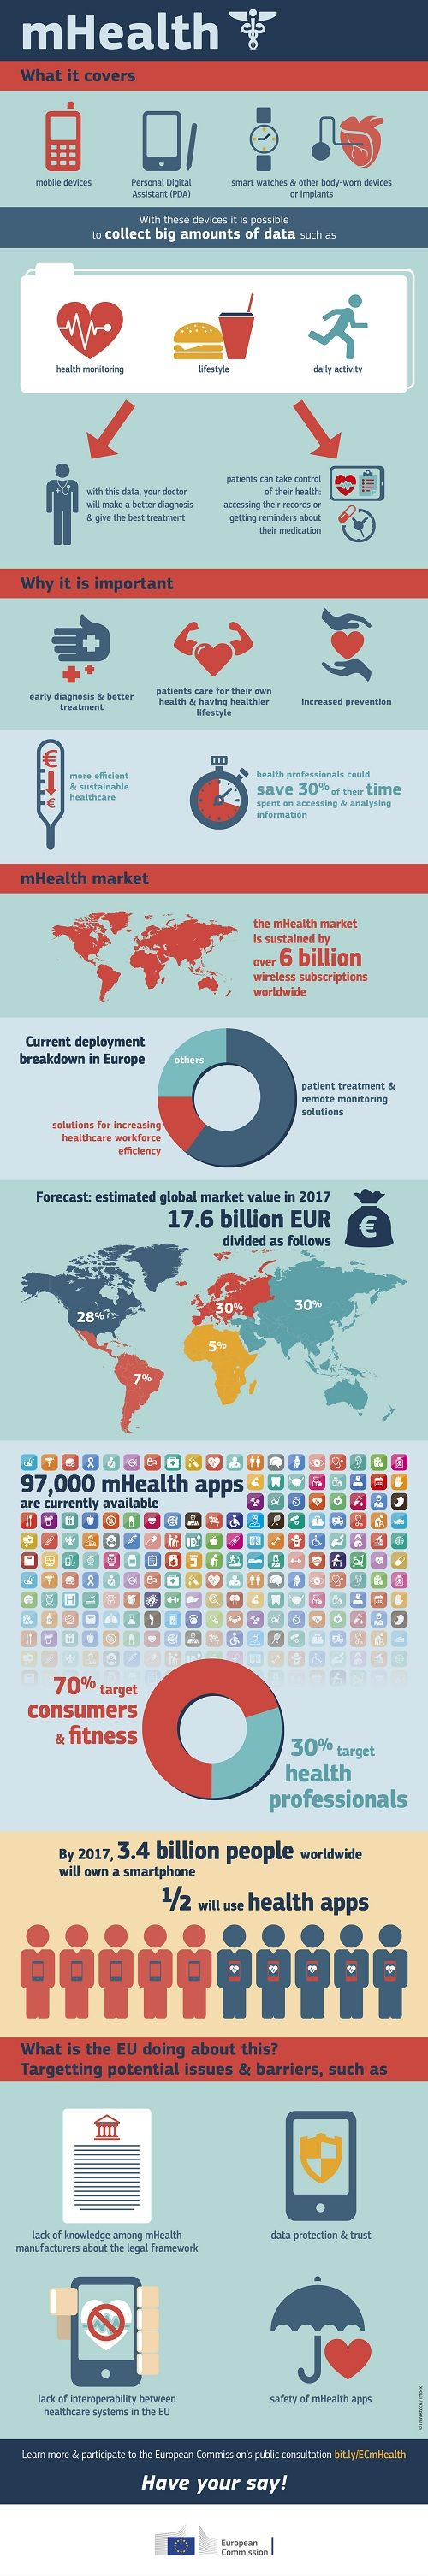 mHealth allows mobile devices to monitor and collect health data more efficiently, allowing quicker and better treatment and increase prevention. The infographic explains in detail what mHealth does and how it improves the life of patients in the EU